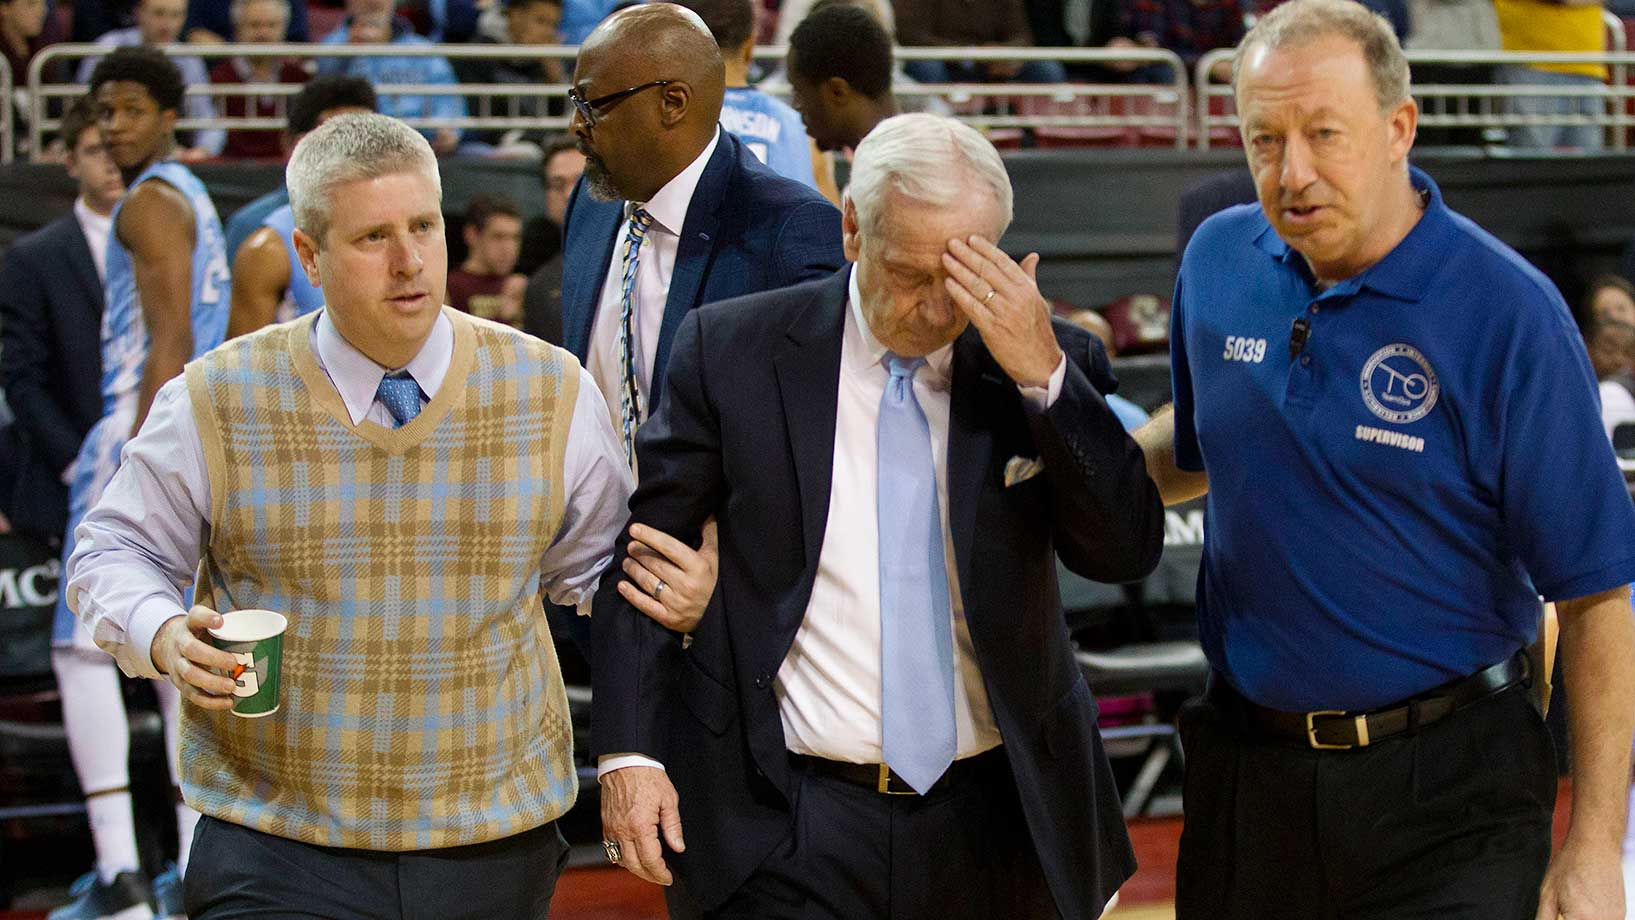 North Carolina's Roy Williams is escorted off the court after he appeared to faint and then sat on the floor surrounded by players.